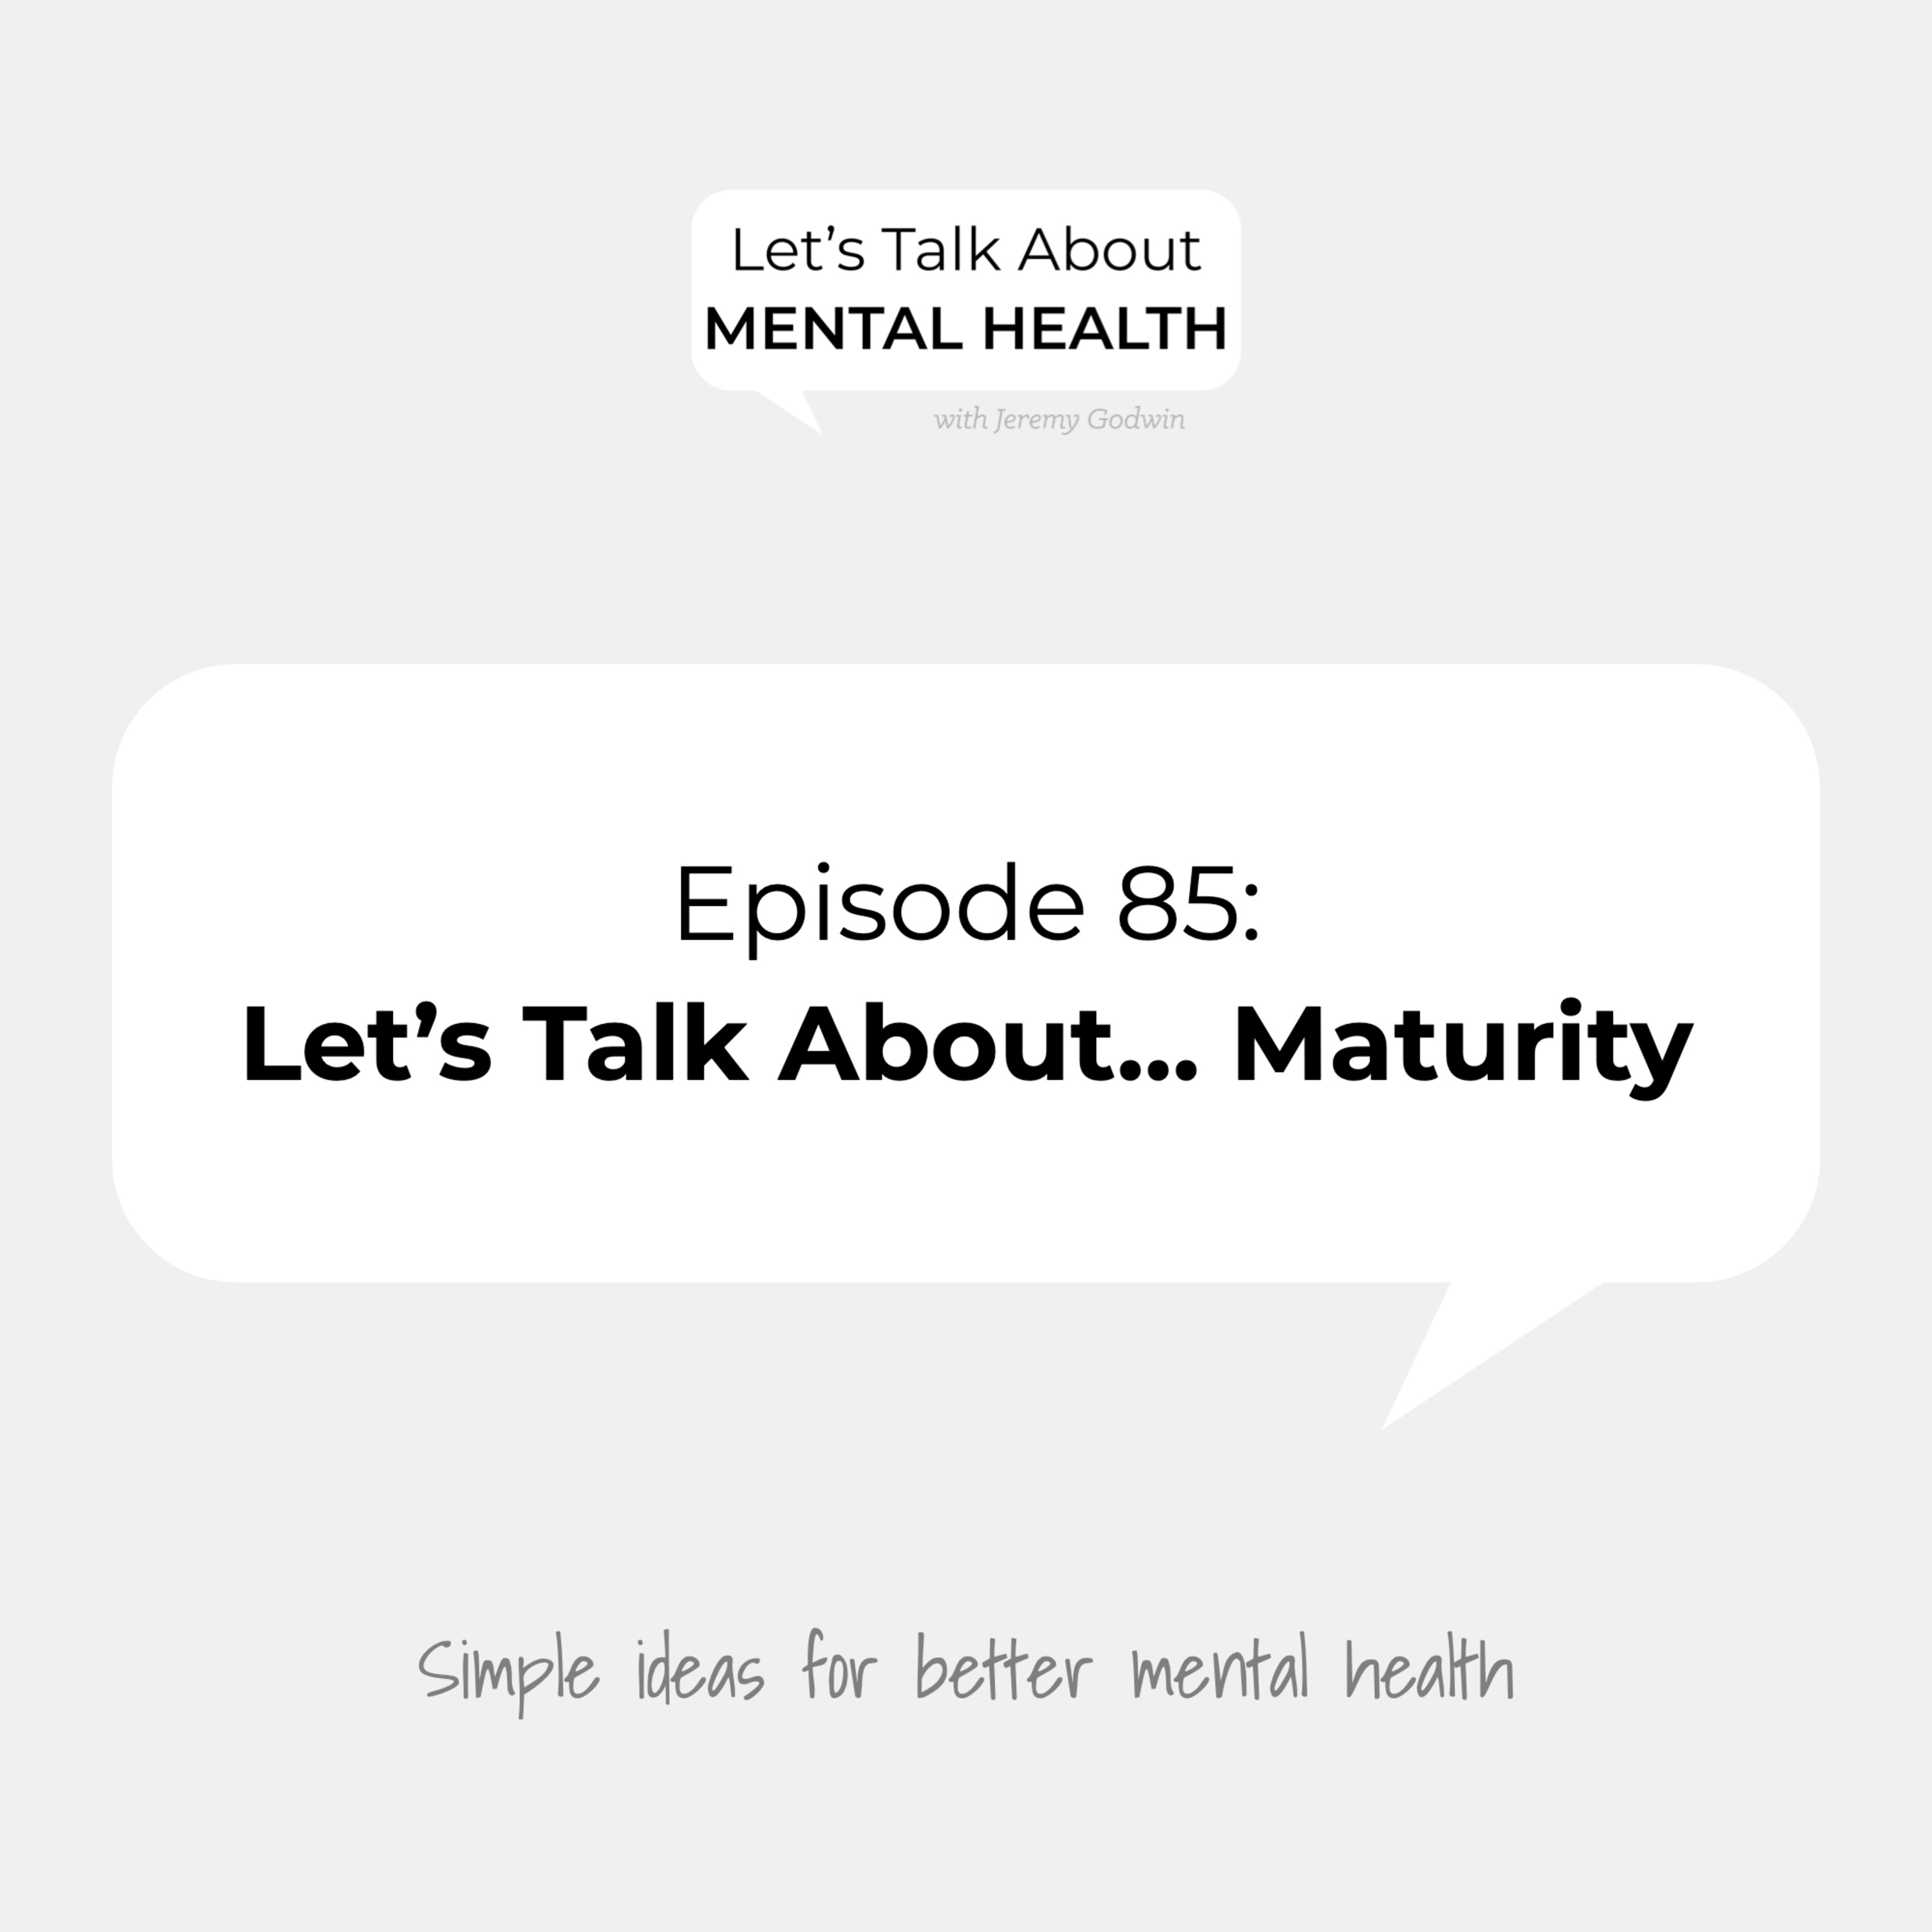 Let's Talk About Mental Health - Let's Talk About... Maturity